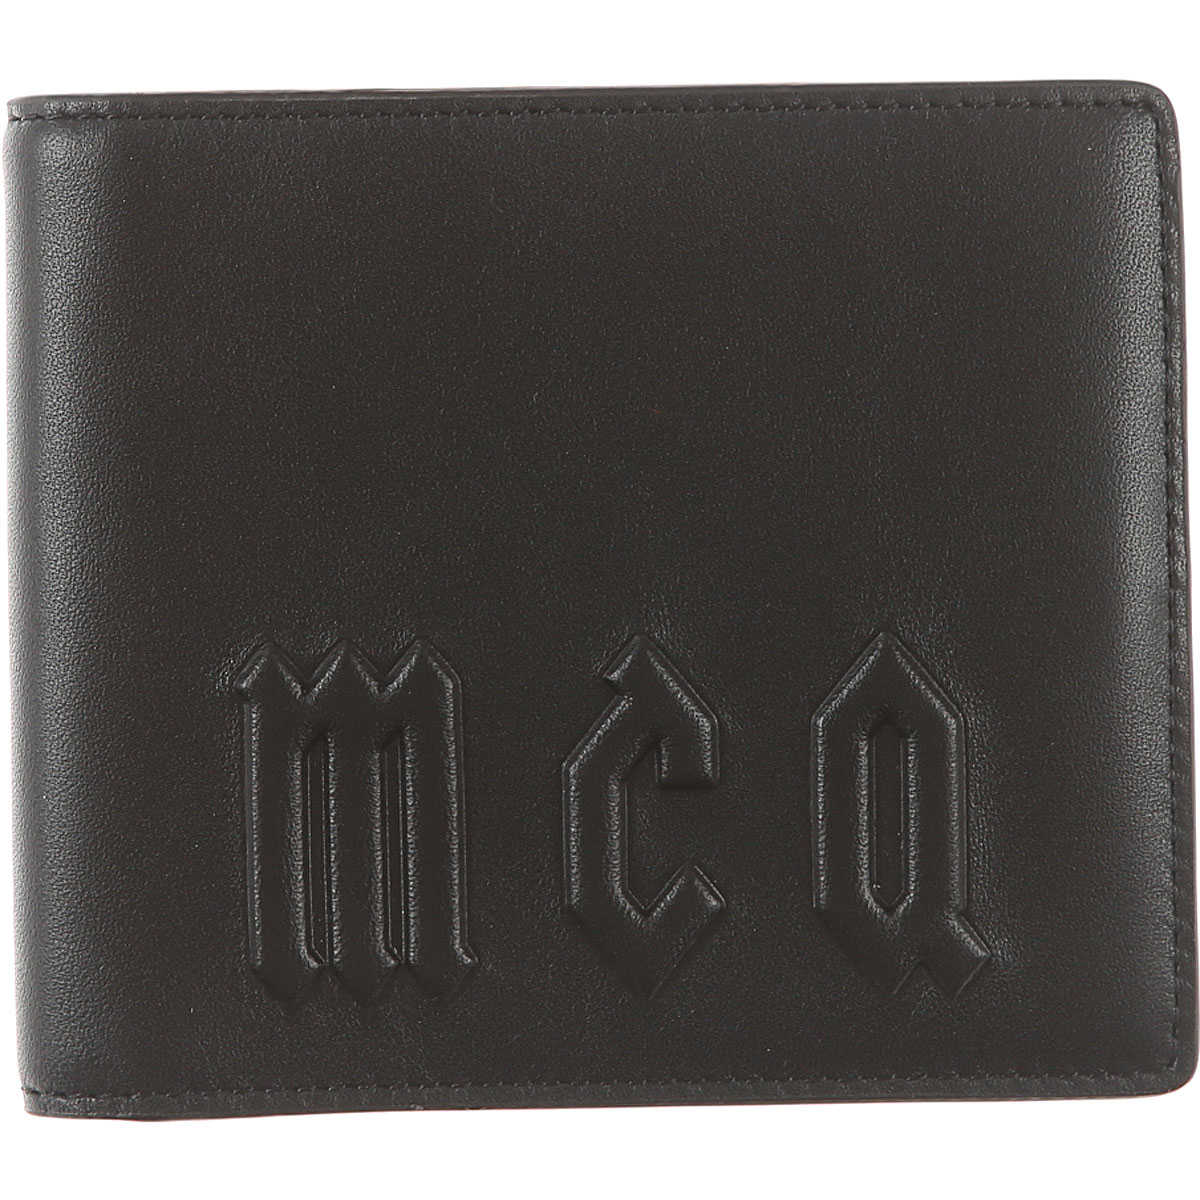 Alexander McQueen McQ Wallet for Men On Sale Black SE - GOOFASH